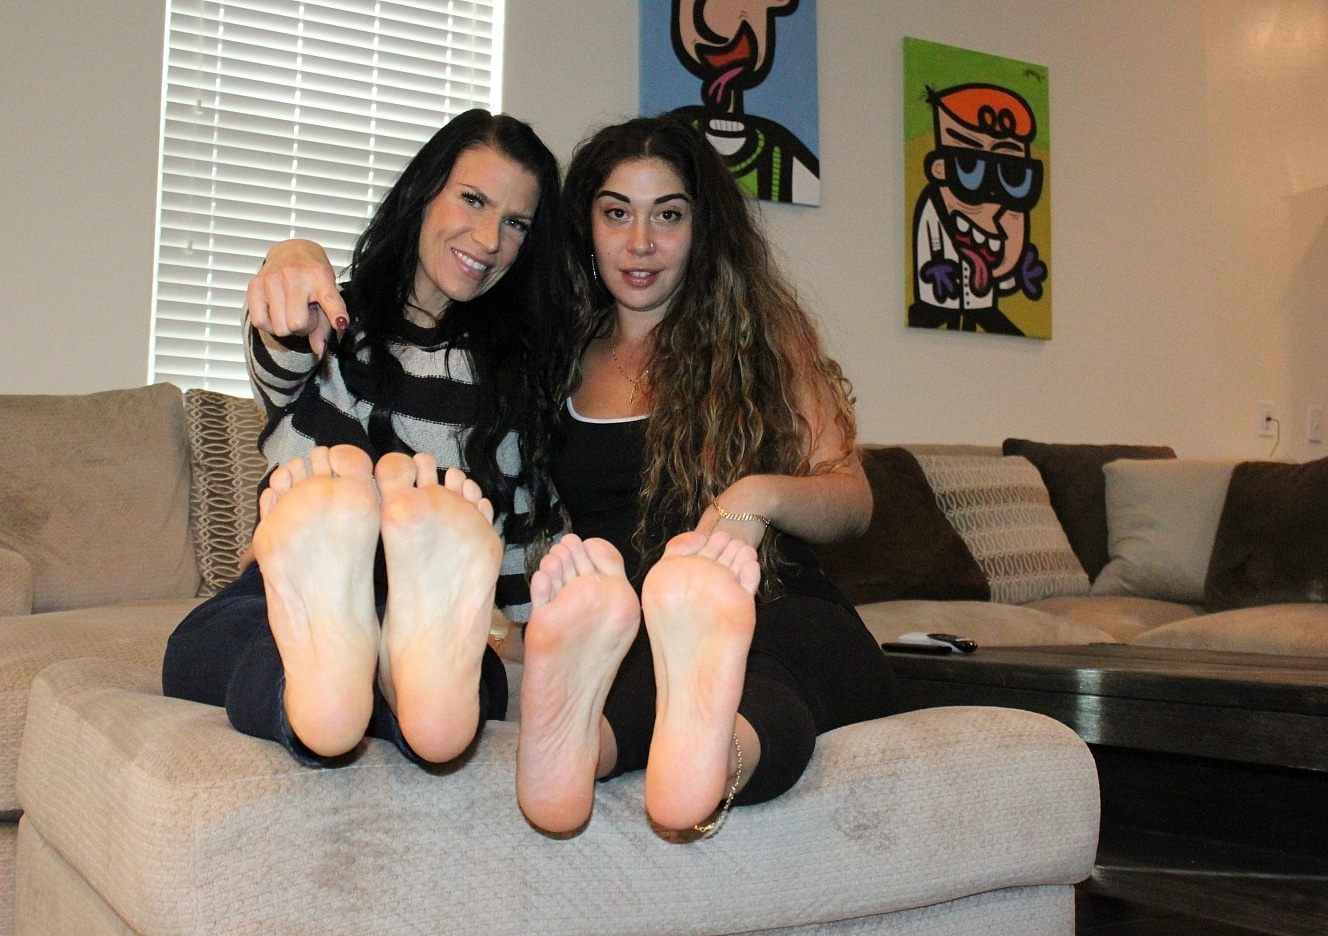 content/xana-and-highness-pov-foot-humiliation/0.jpg